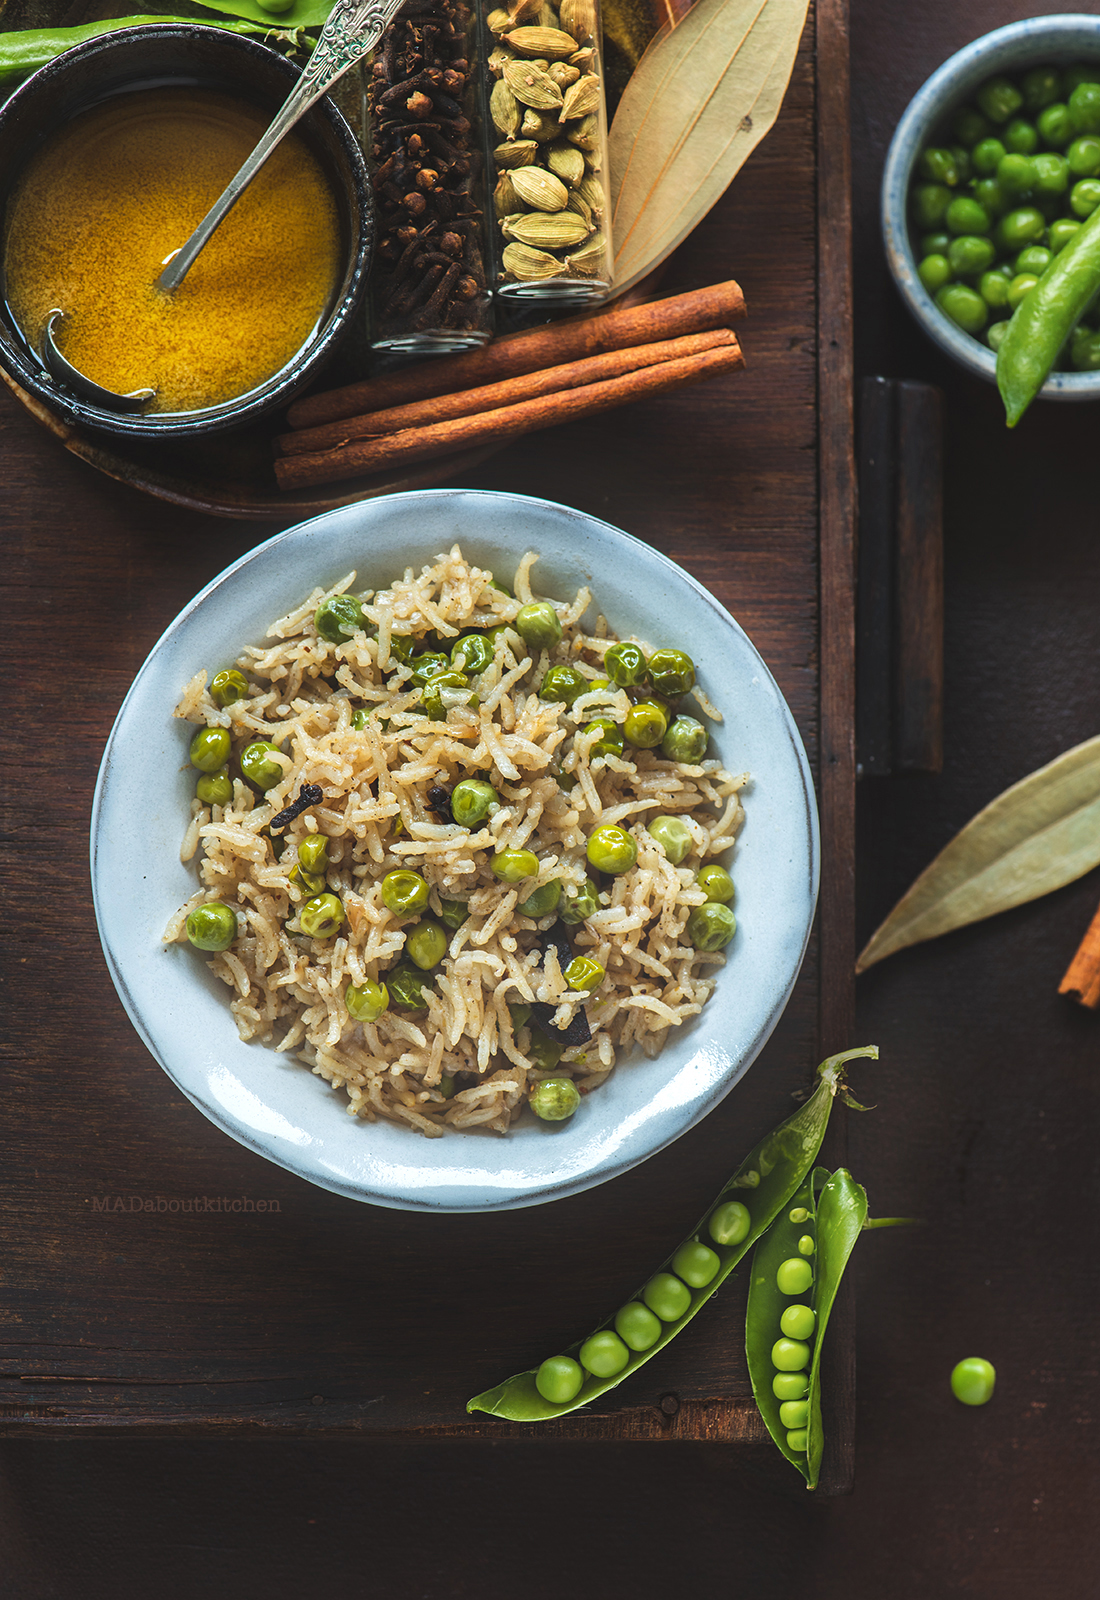 Matarwaale Chawal or Peas pulav is a basic, simple, comforting, basic rice dish that is not only one pot but is ready in 20mins start to end.